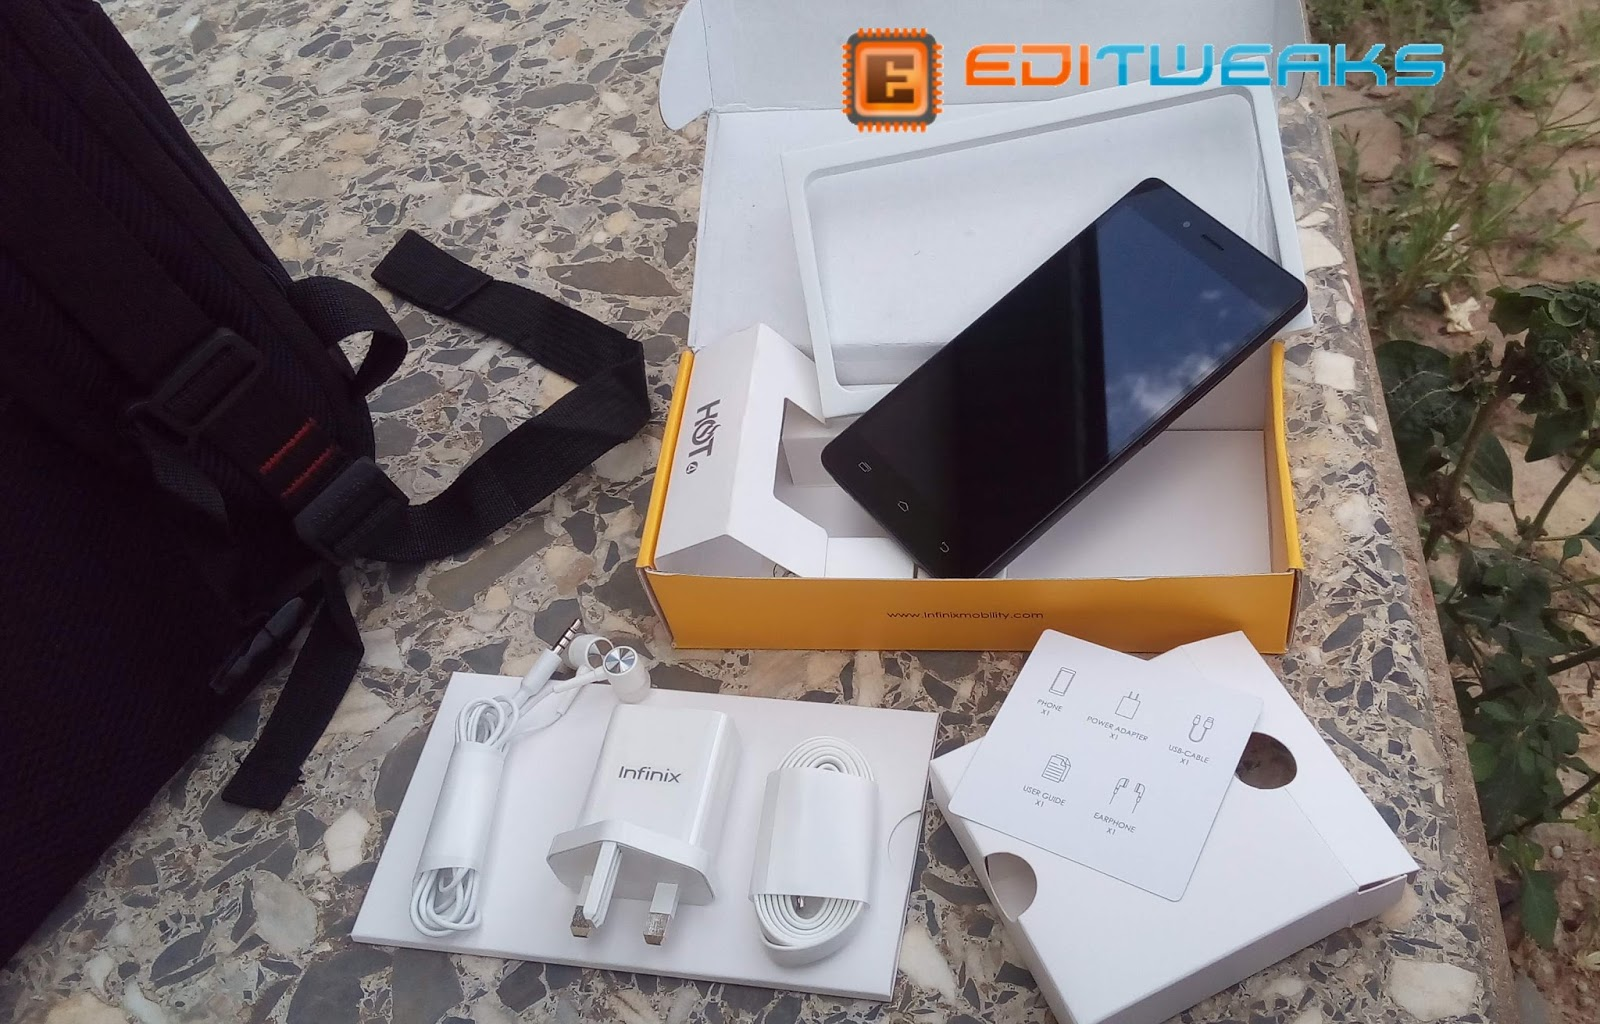 Jual Murah Infinix Hot 4 Pro Update 2018 Mainan Mobil Anak Tomica Limited Vintage Series Datsun Bluebird 1300 Standard X557 Unboxing Photos And First Impressions The 55 Inched Display Device Looked